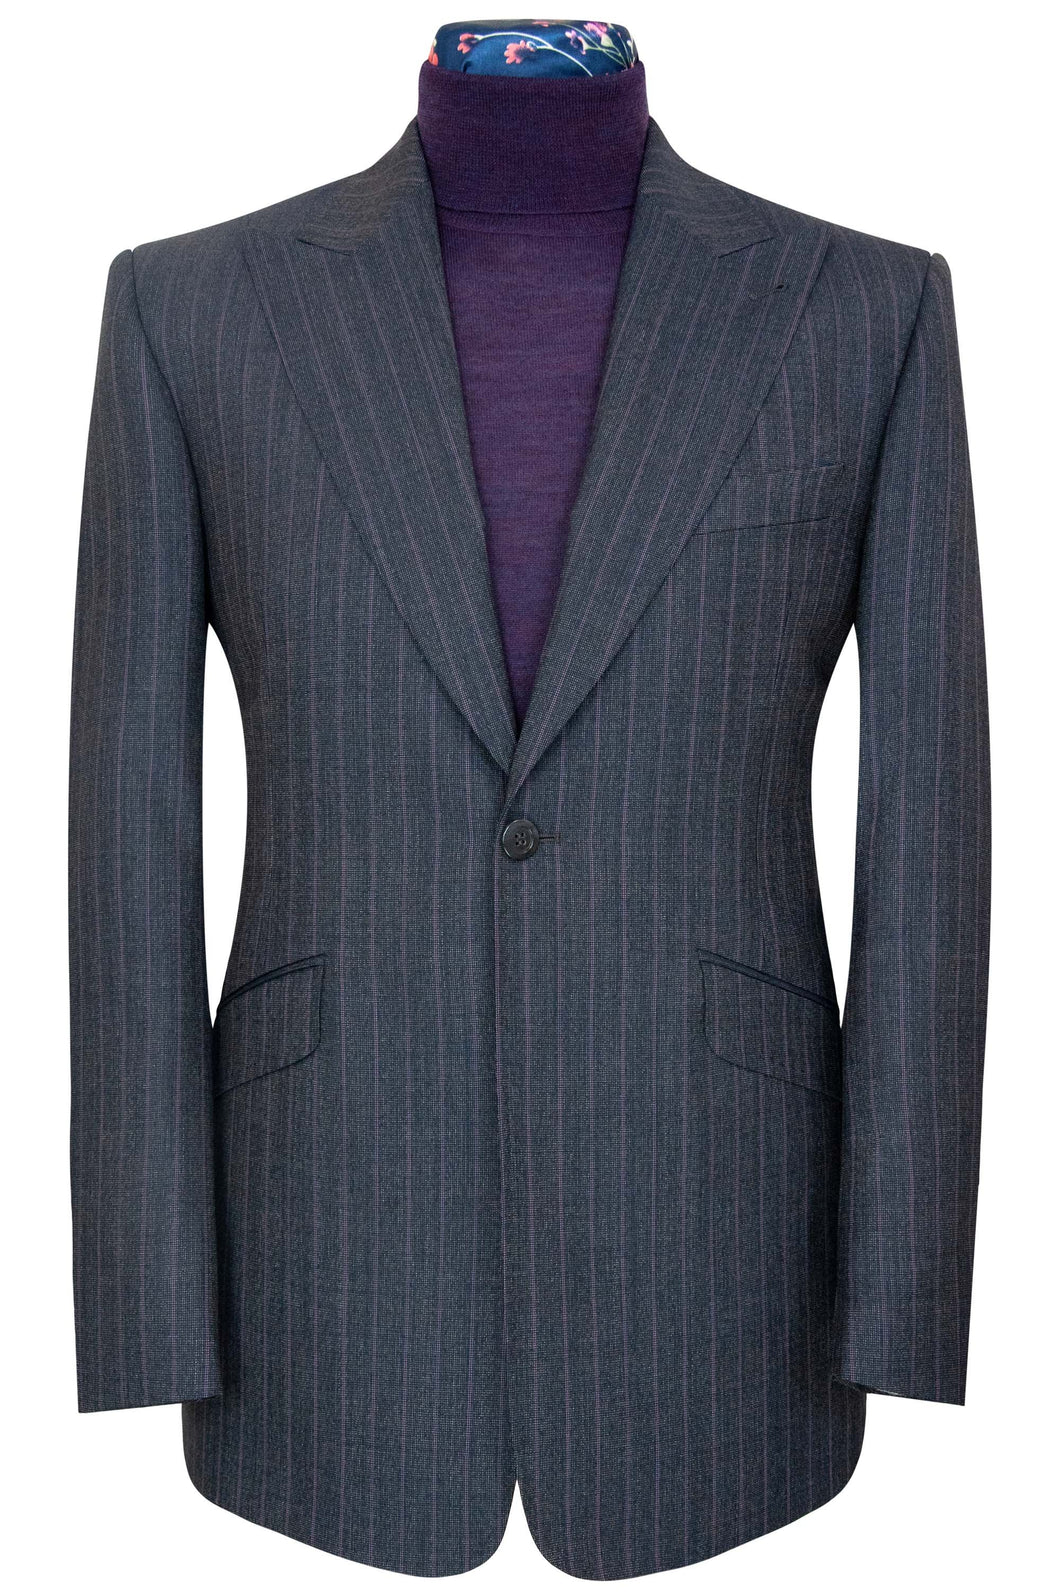 William Hunt Savile Row | The Blake Charcoal Suit with Purple Pinstripe